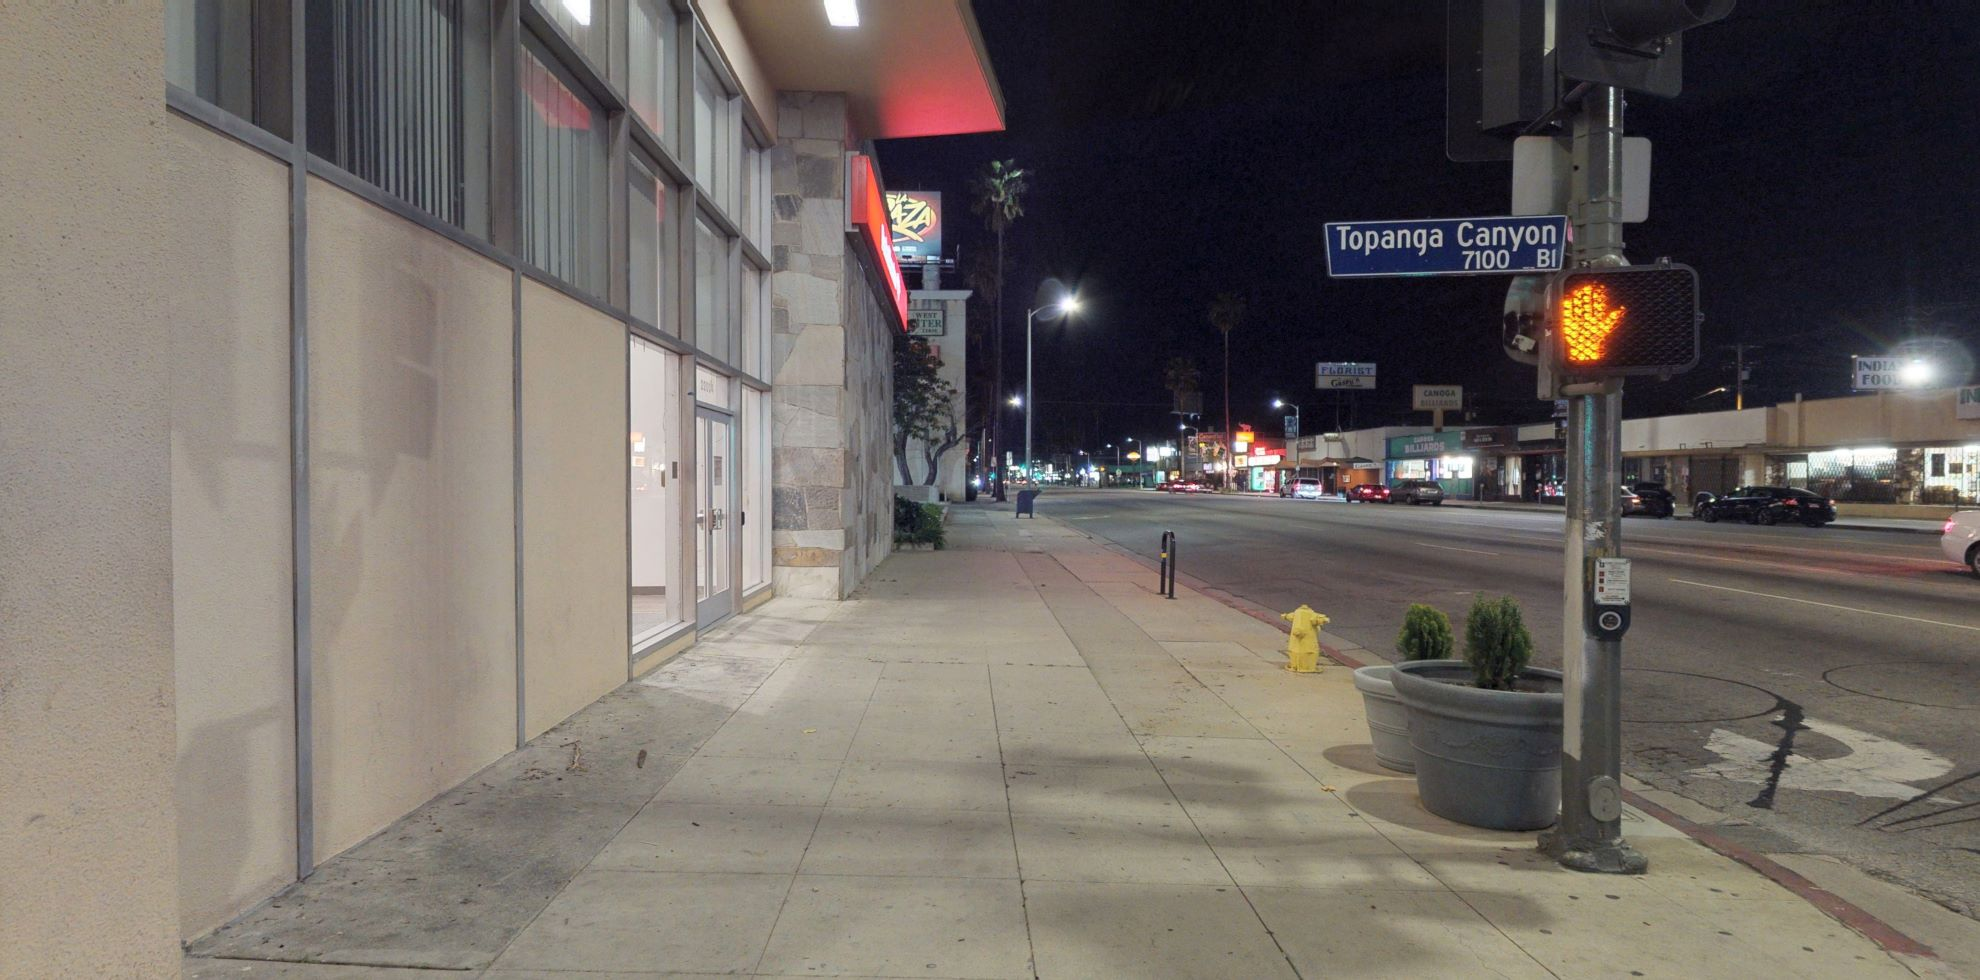 Bank of America financial center with walk-up ATM   22004 Sherman Way, Canoga Park, CA 91303